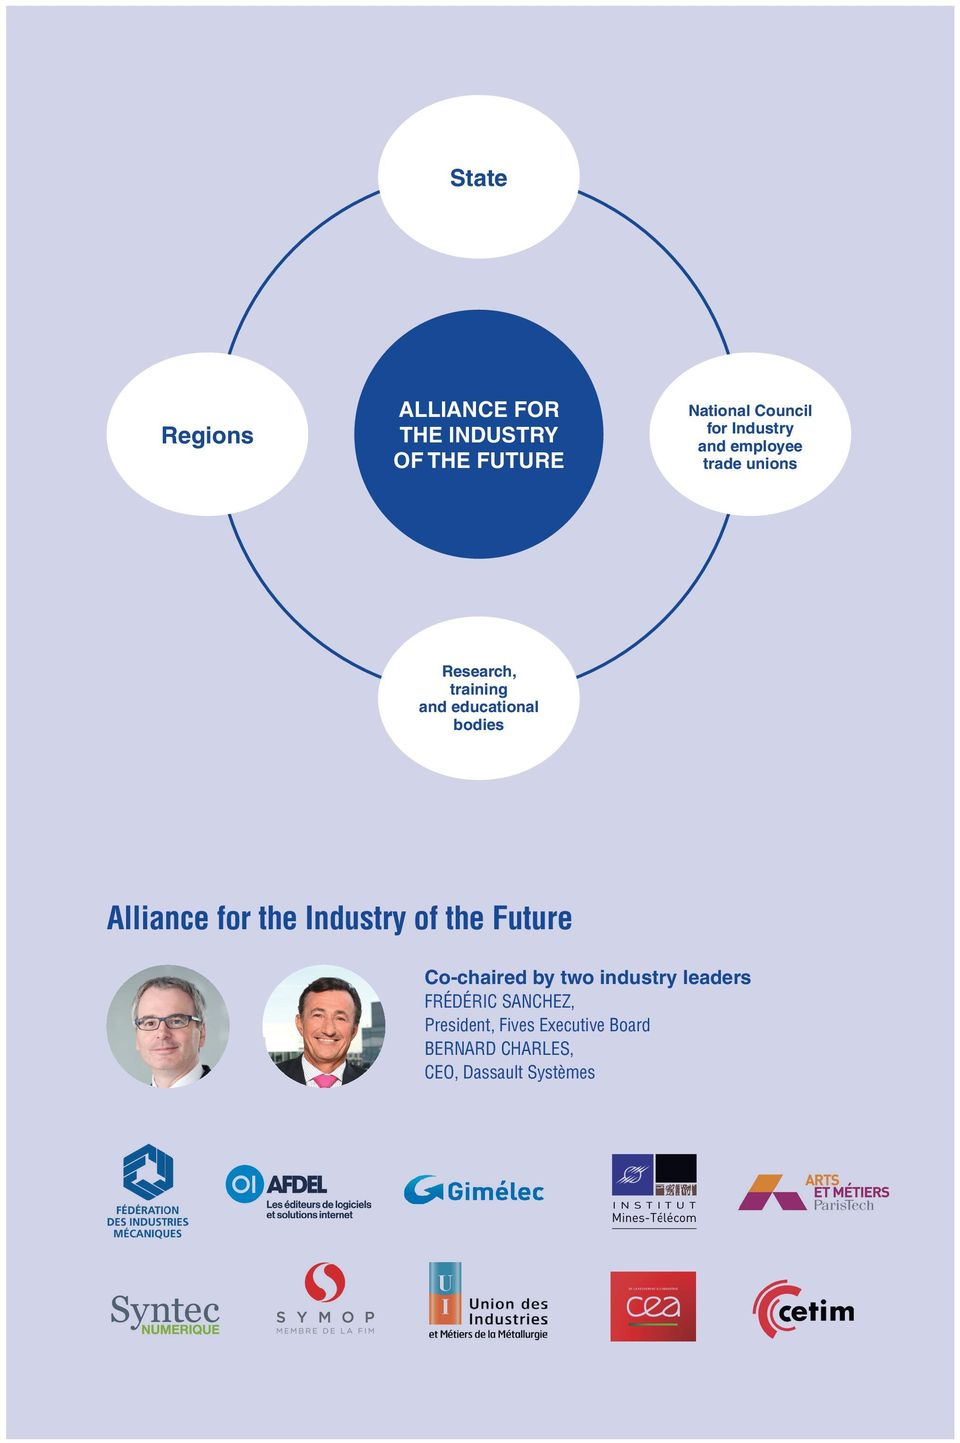 Alliance for the Industry of the Future Co-chaired by two industry leaders